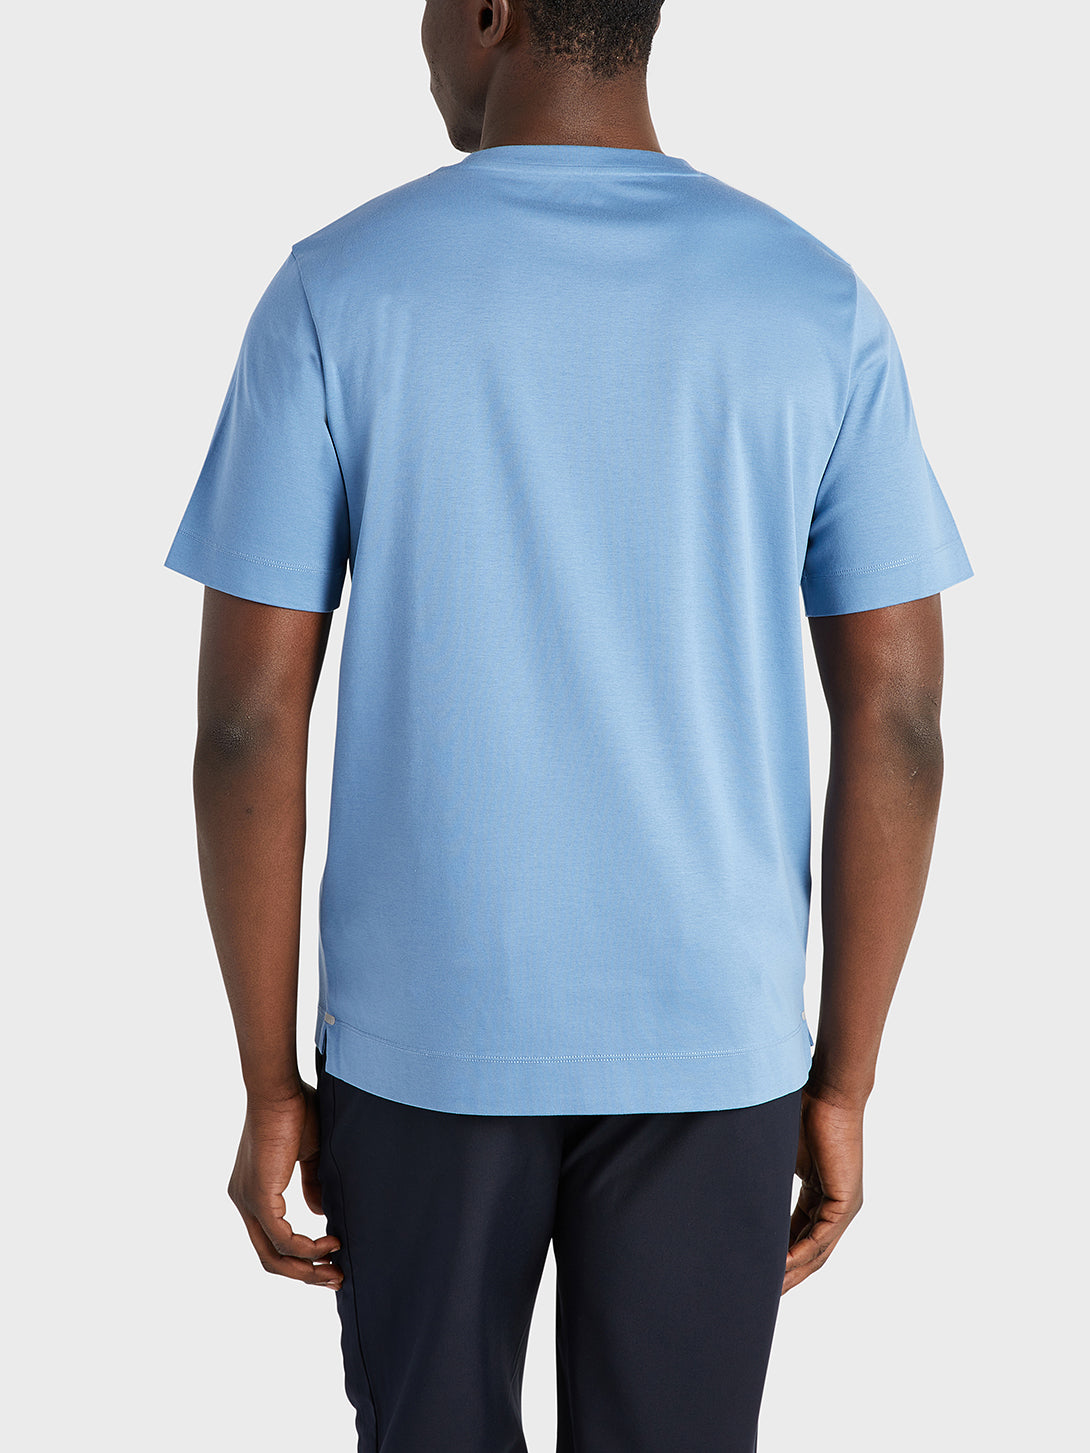 Mid Blue Baseile Pocket Tee Men's cotton t-shirts ONS Clothing